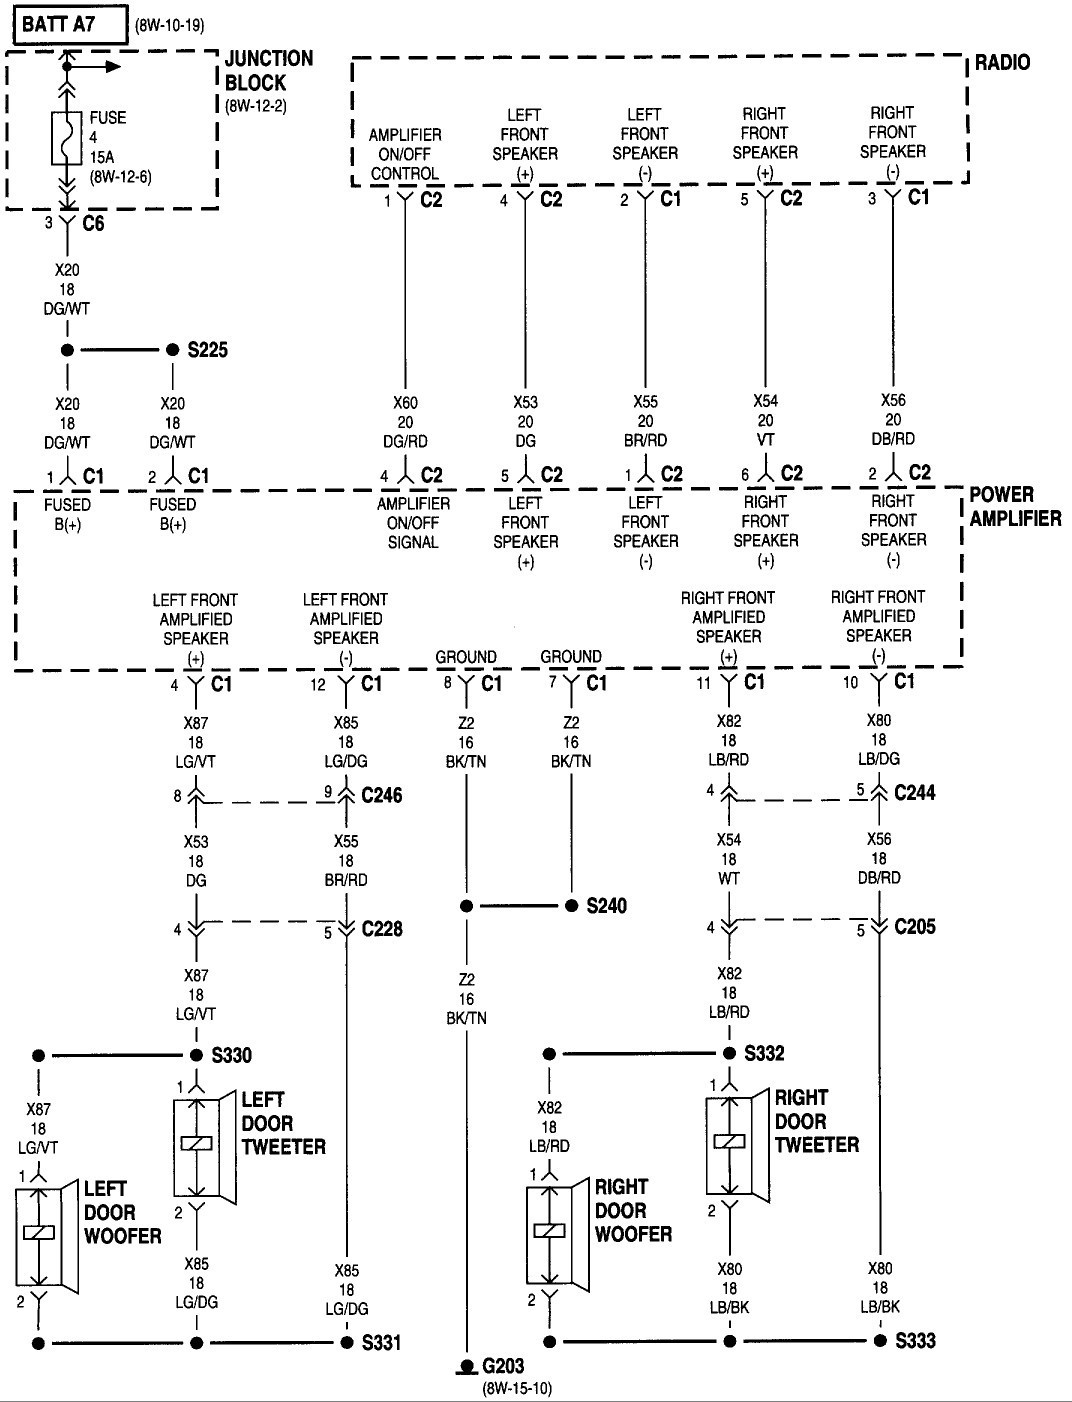 Wiring Diagram 1998 Dodge Ram 2500